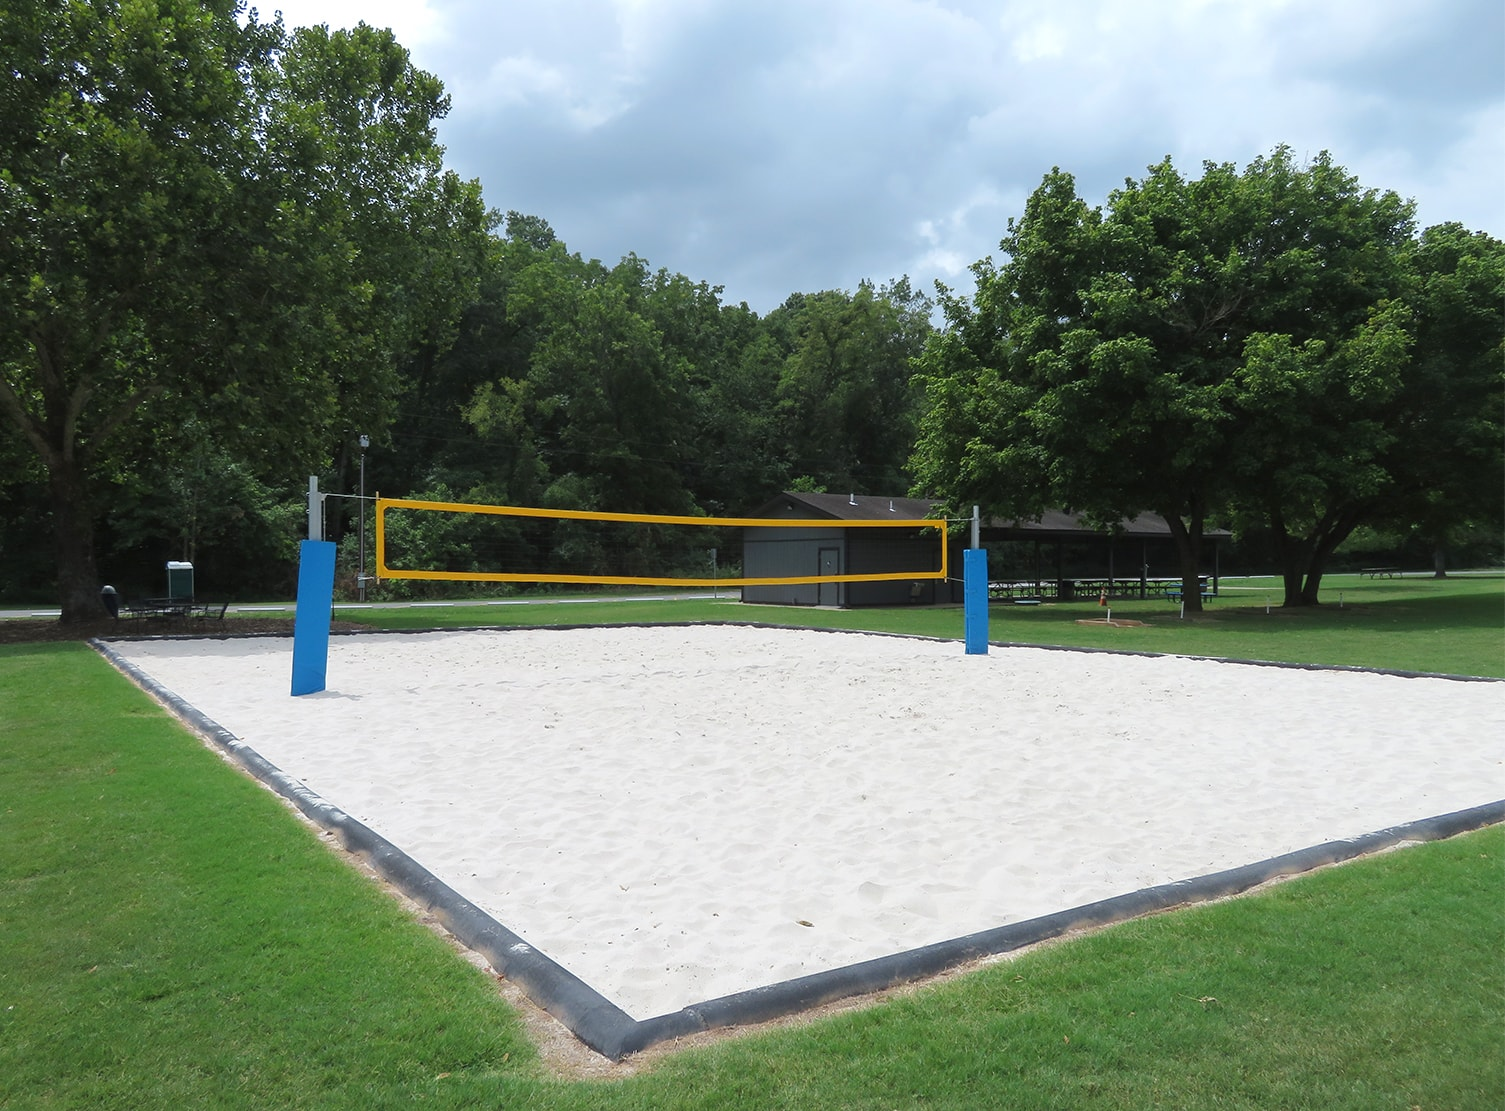 outdoor sand volleyball court in the park